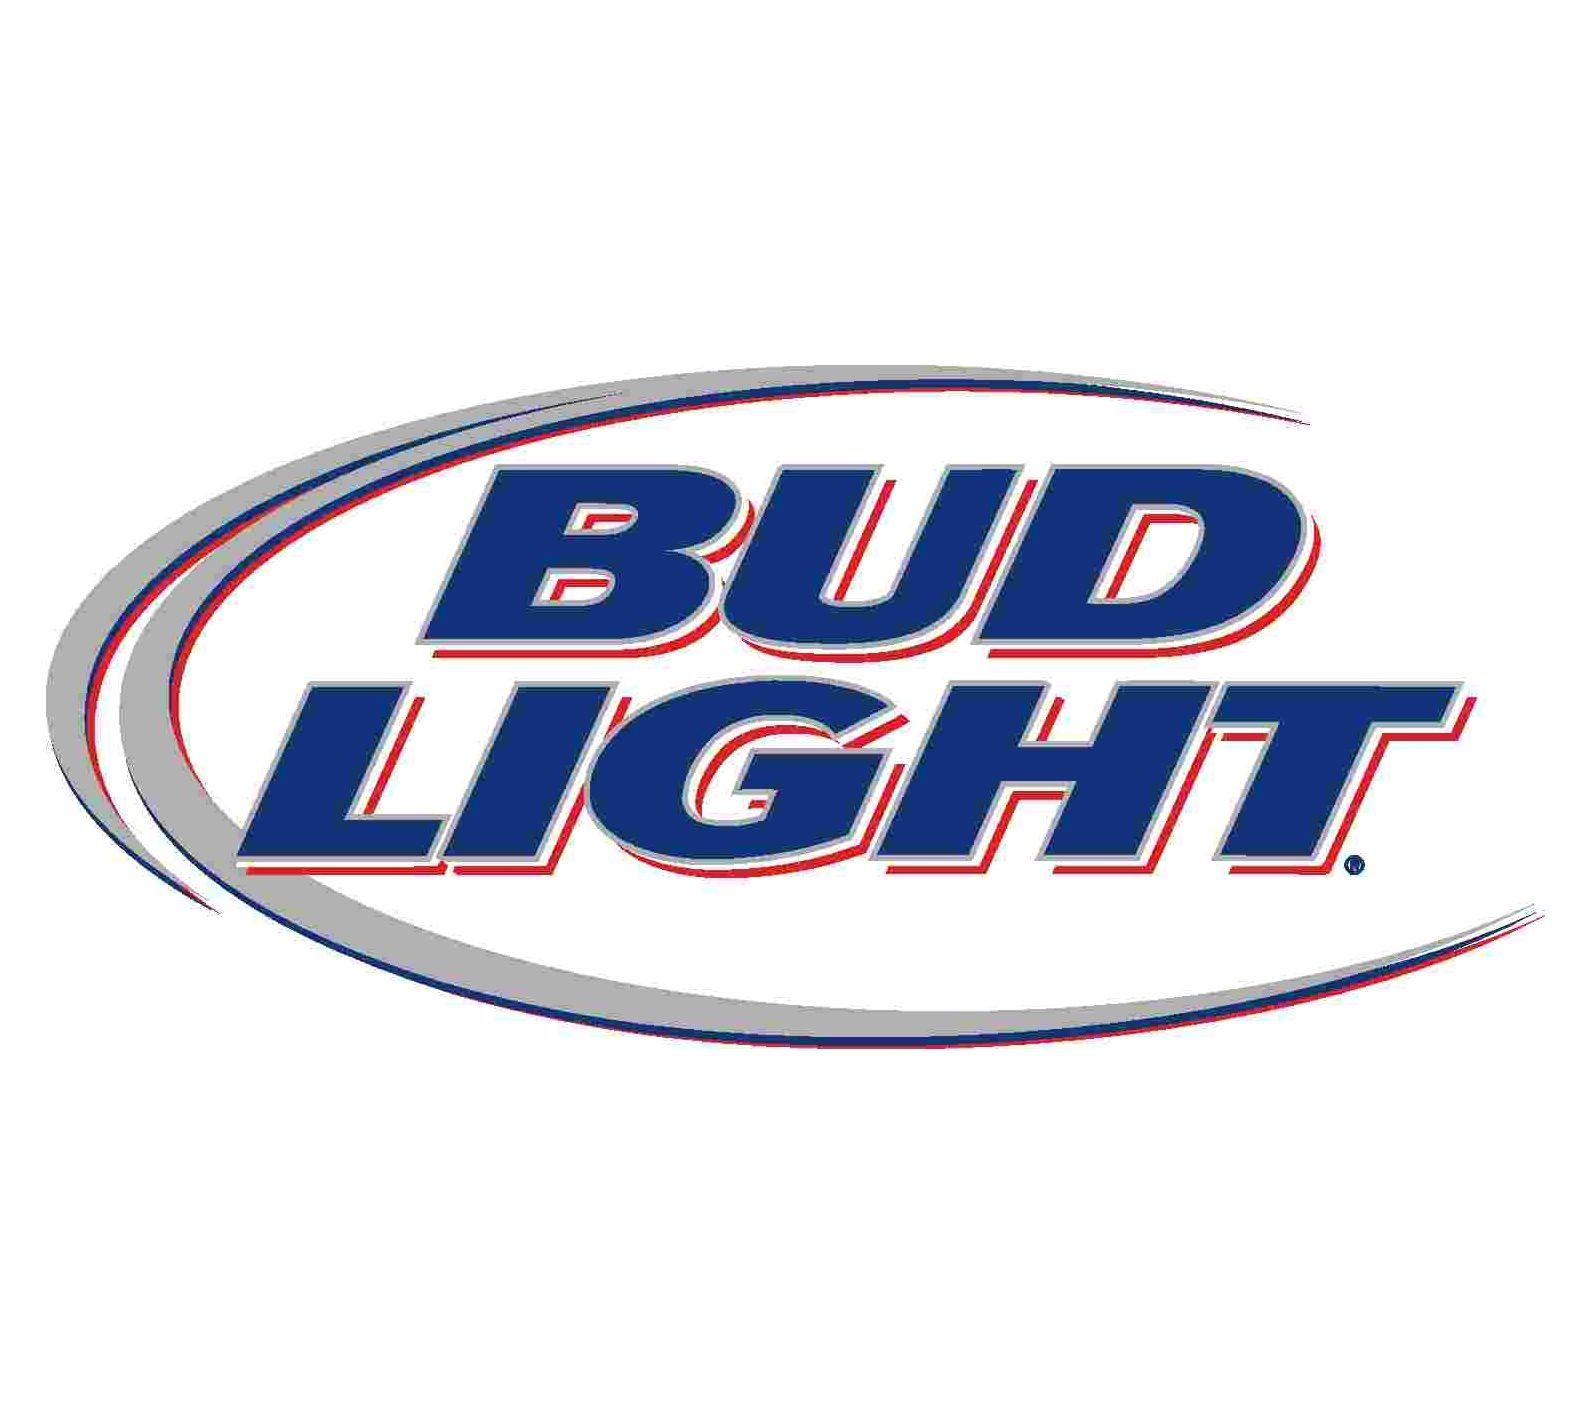 Win an Event Experience Bud light, Bud light beer, Beer